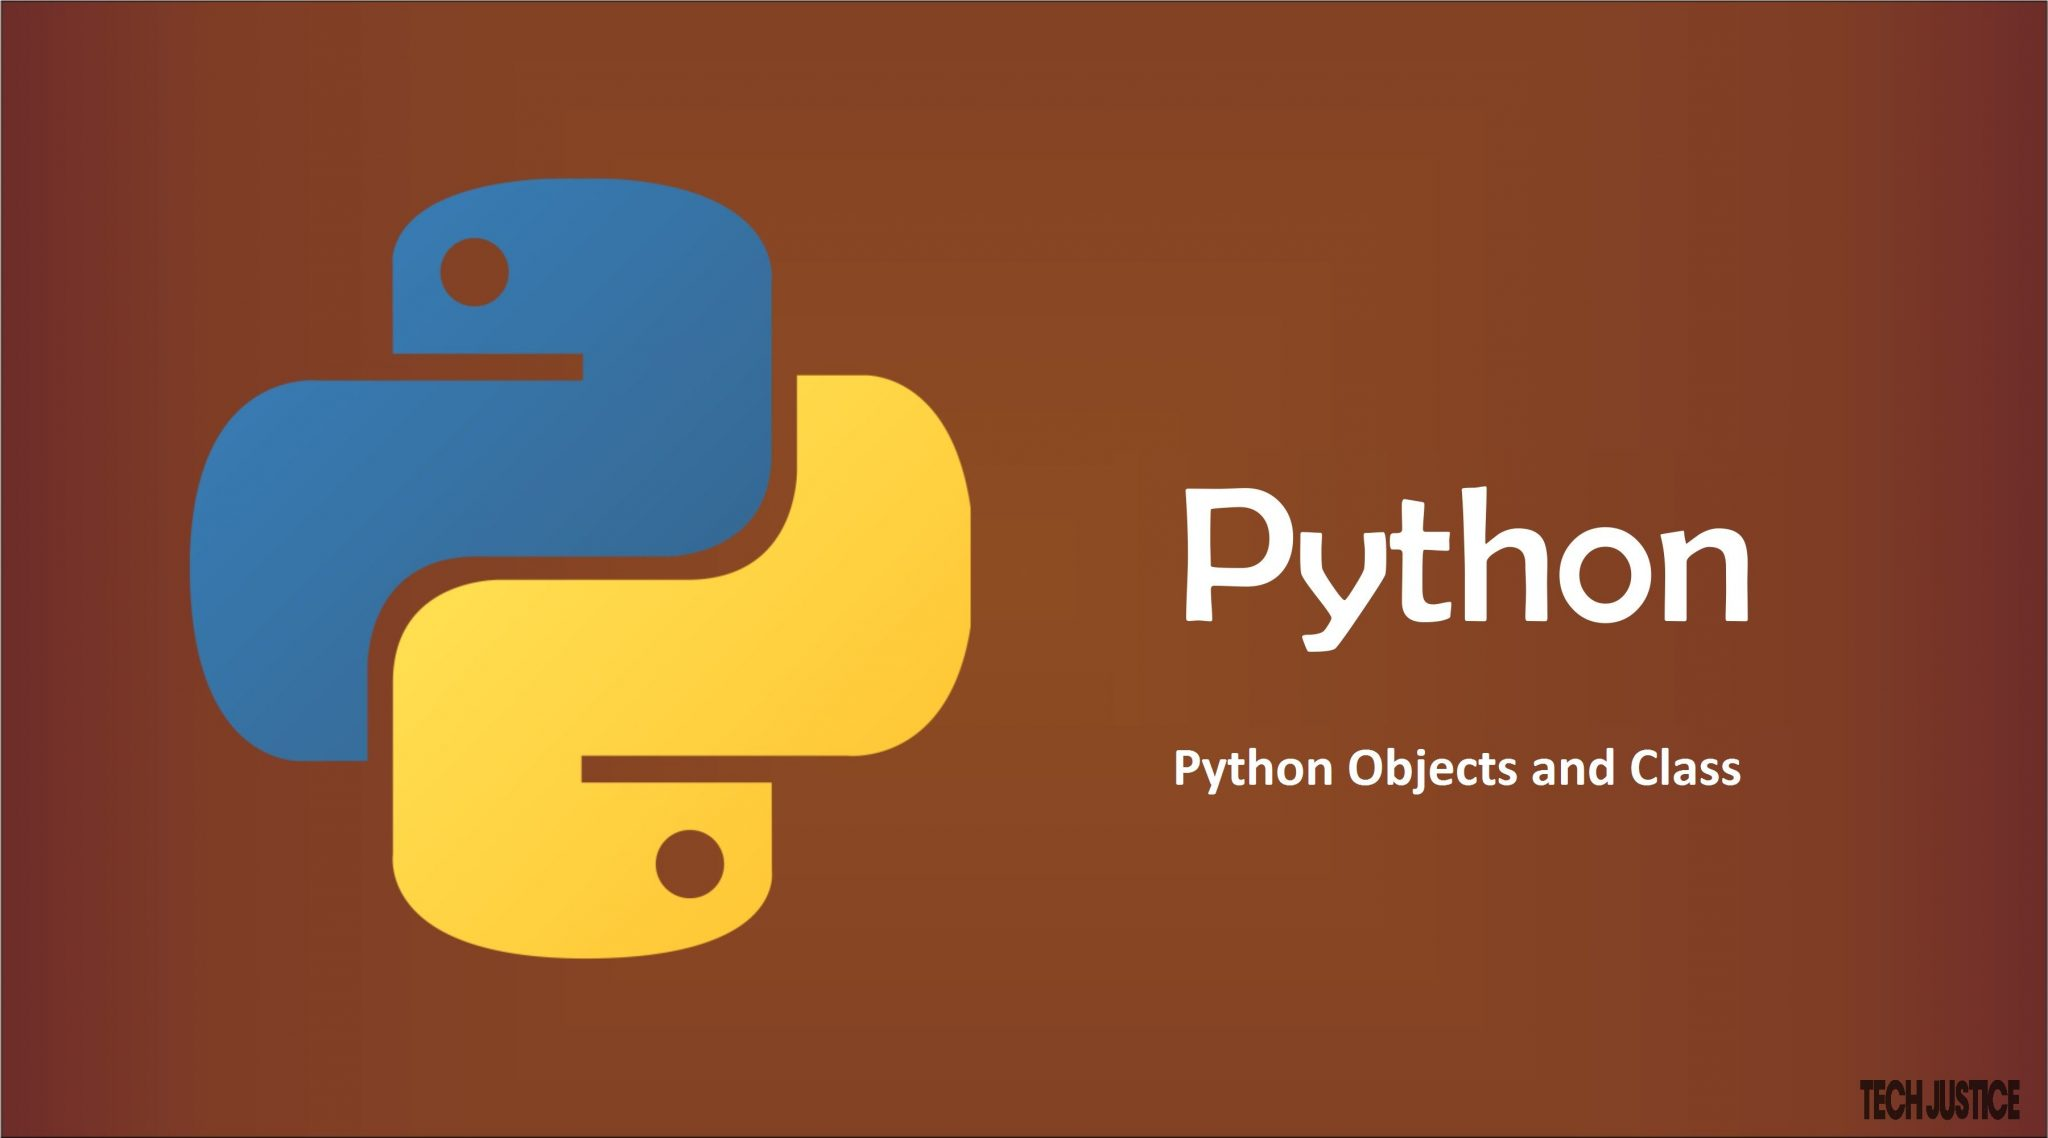 Python-Objects-and-Class-Tech-Justice